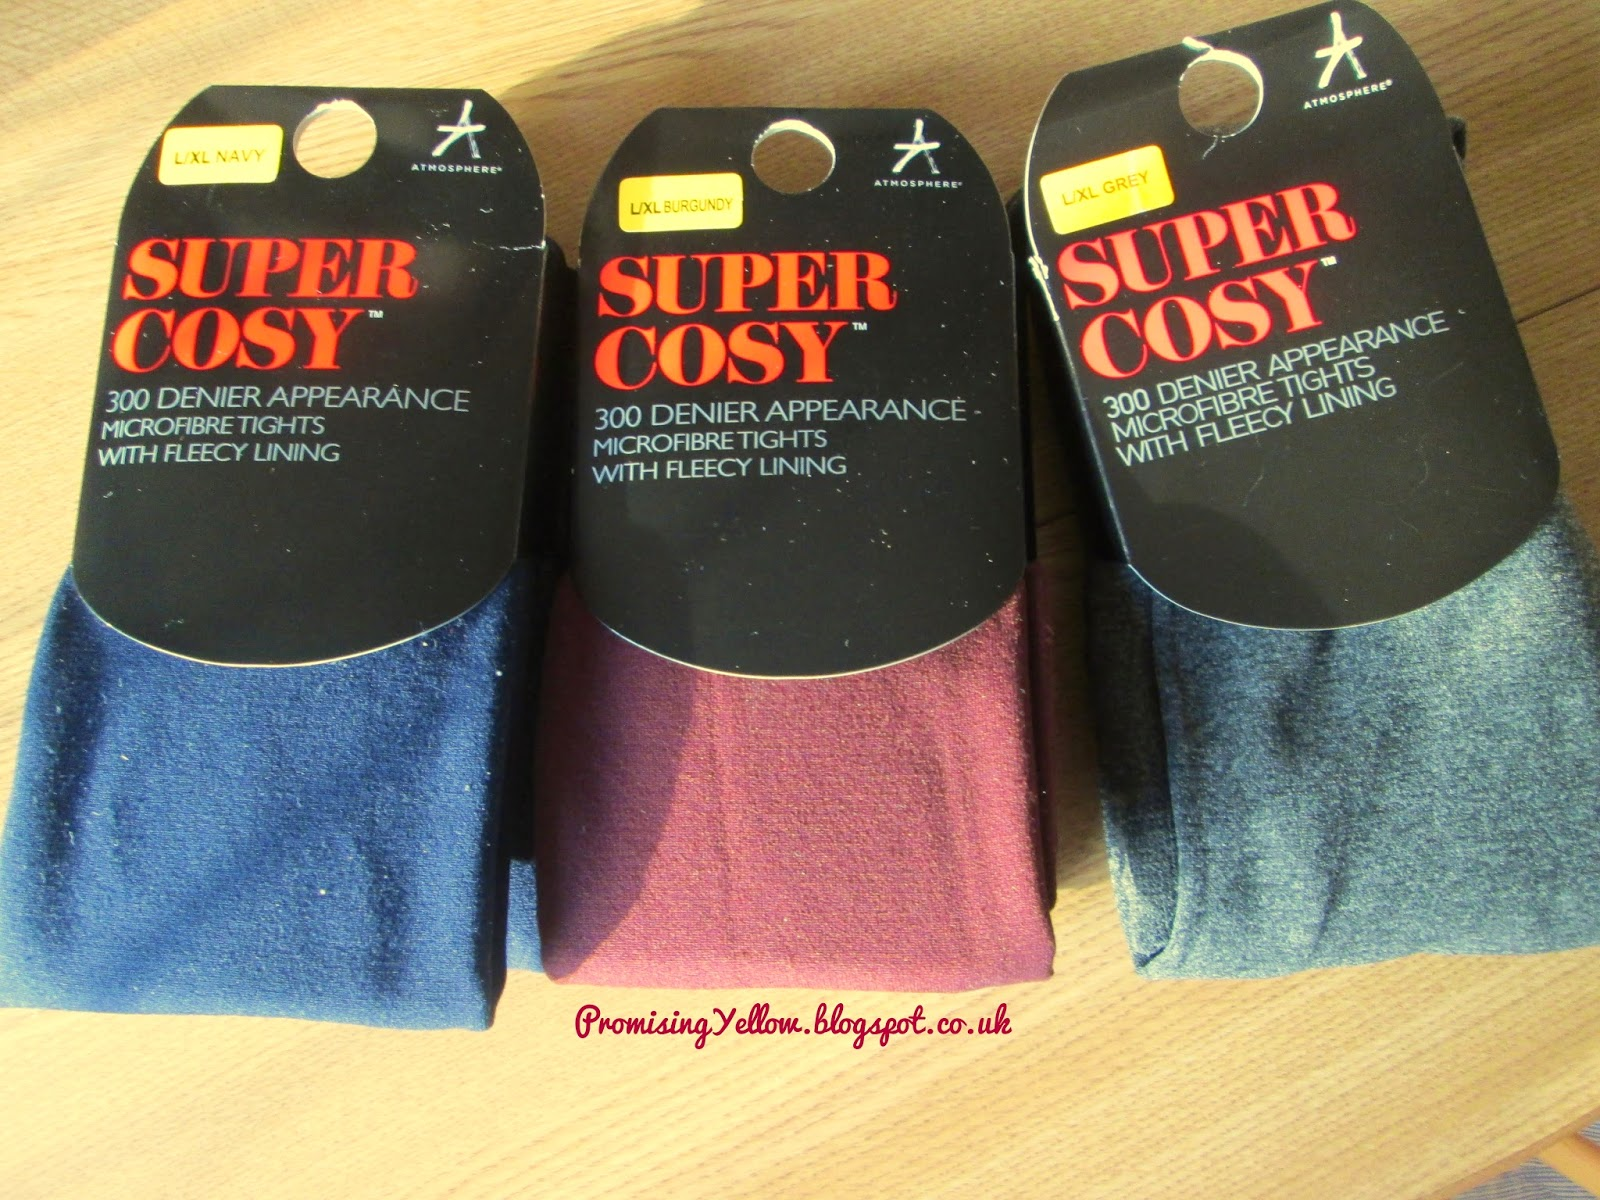 Primark super cosy tights fleece lined burgundy, navy and grey marl